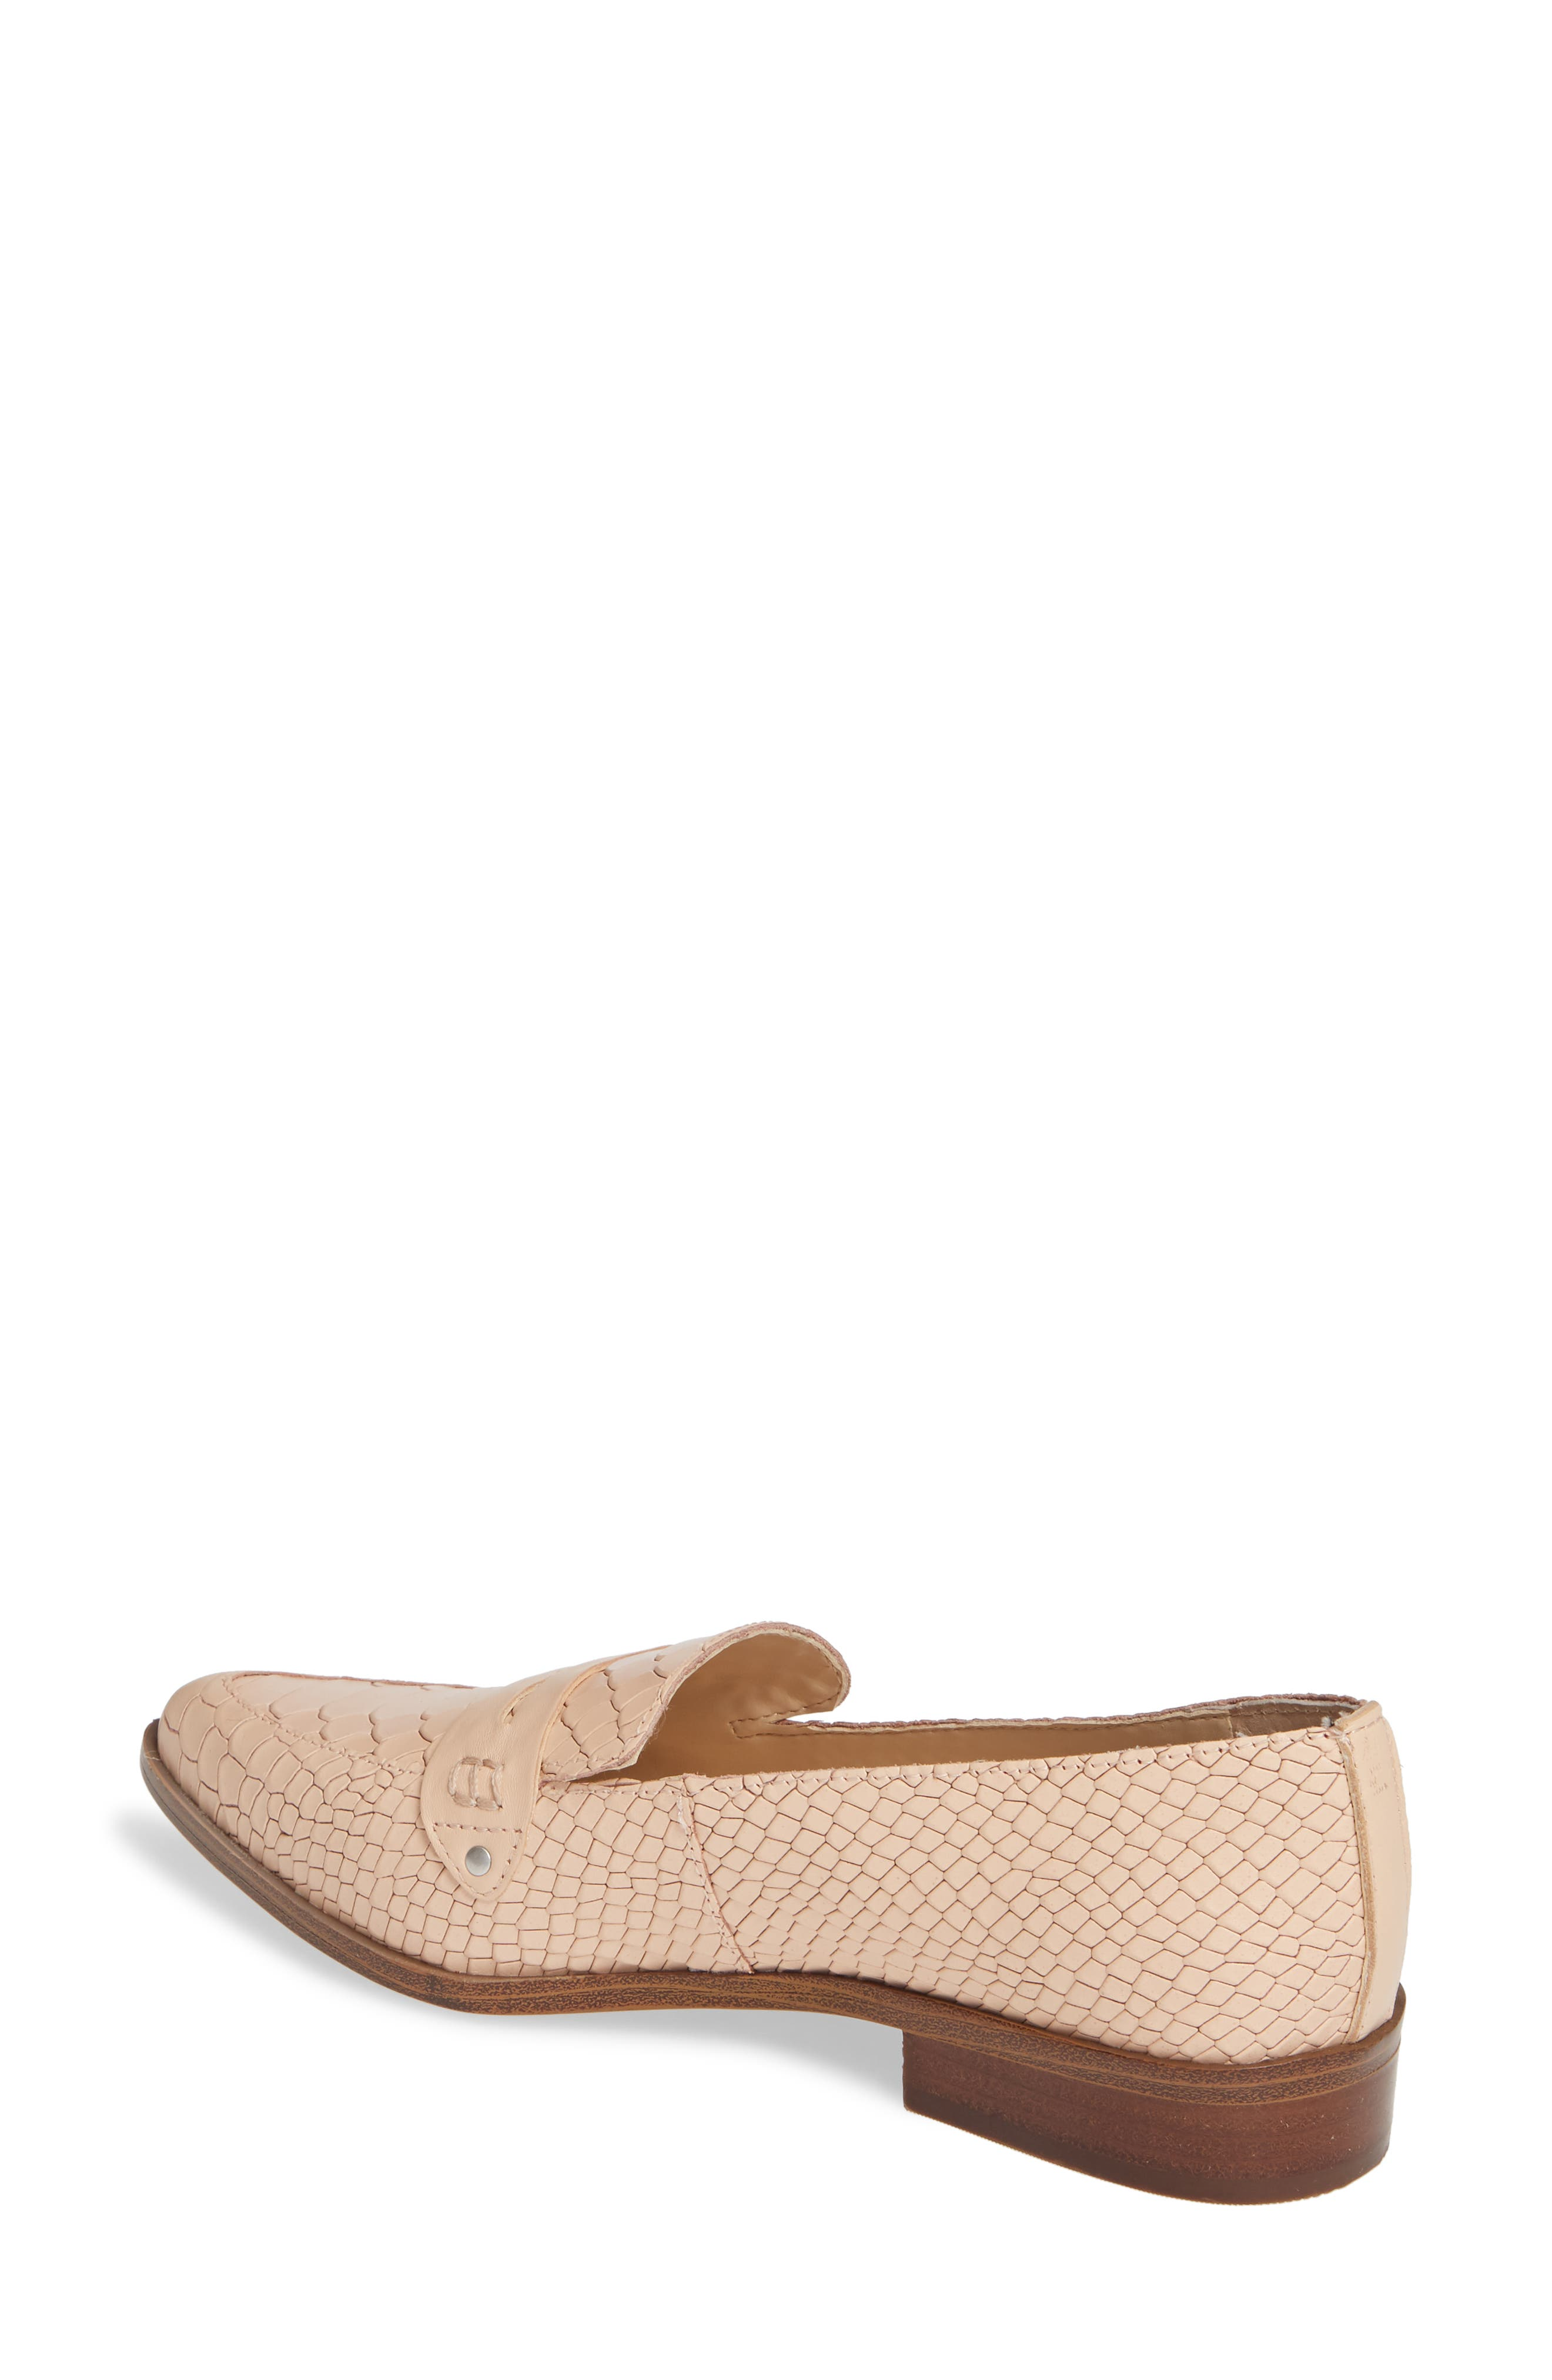 SOLE SOCIETY, Jessica Smoking Slipper, Alternate thumbnail 2, color, BISQUE LEATHER